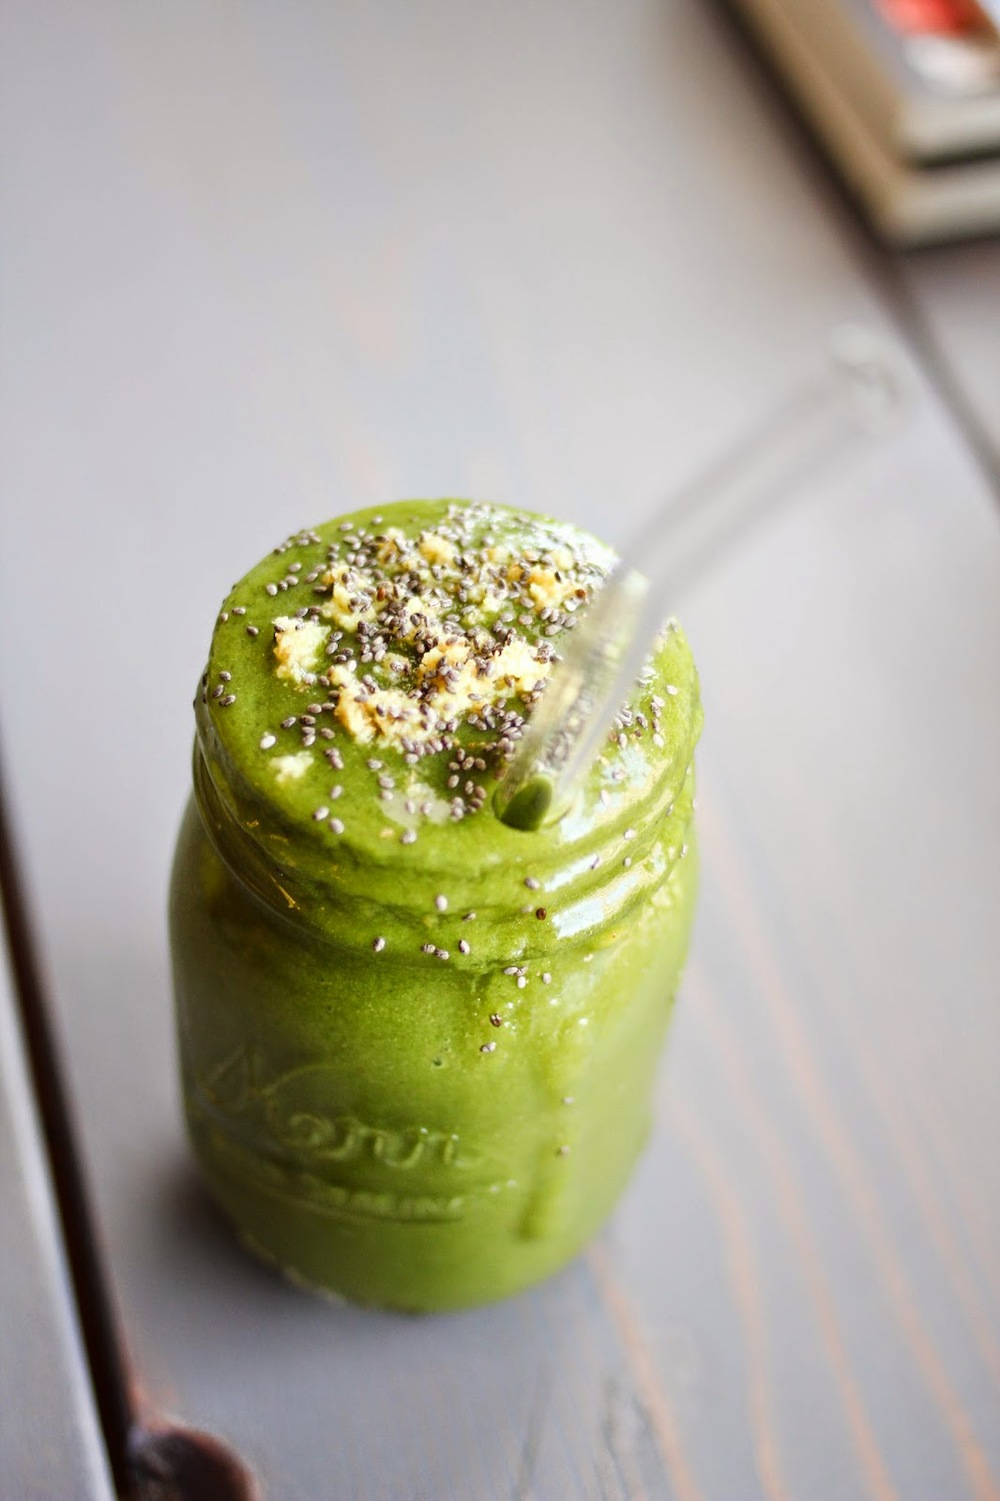 'kale-ada smoothie'   1 cup kale  grated ginger (to taste)  1/2 frozen banana  3/4 cup frozen mango  3/4 cup pineapple  16 oz coconut water  1 tbspn chia seeds